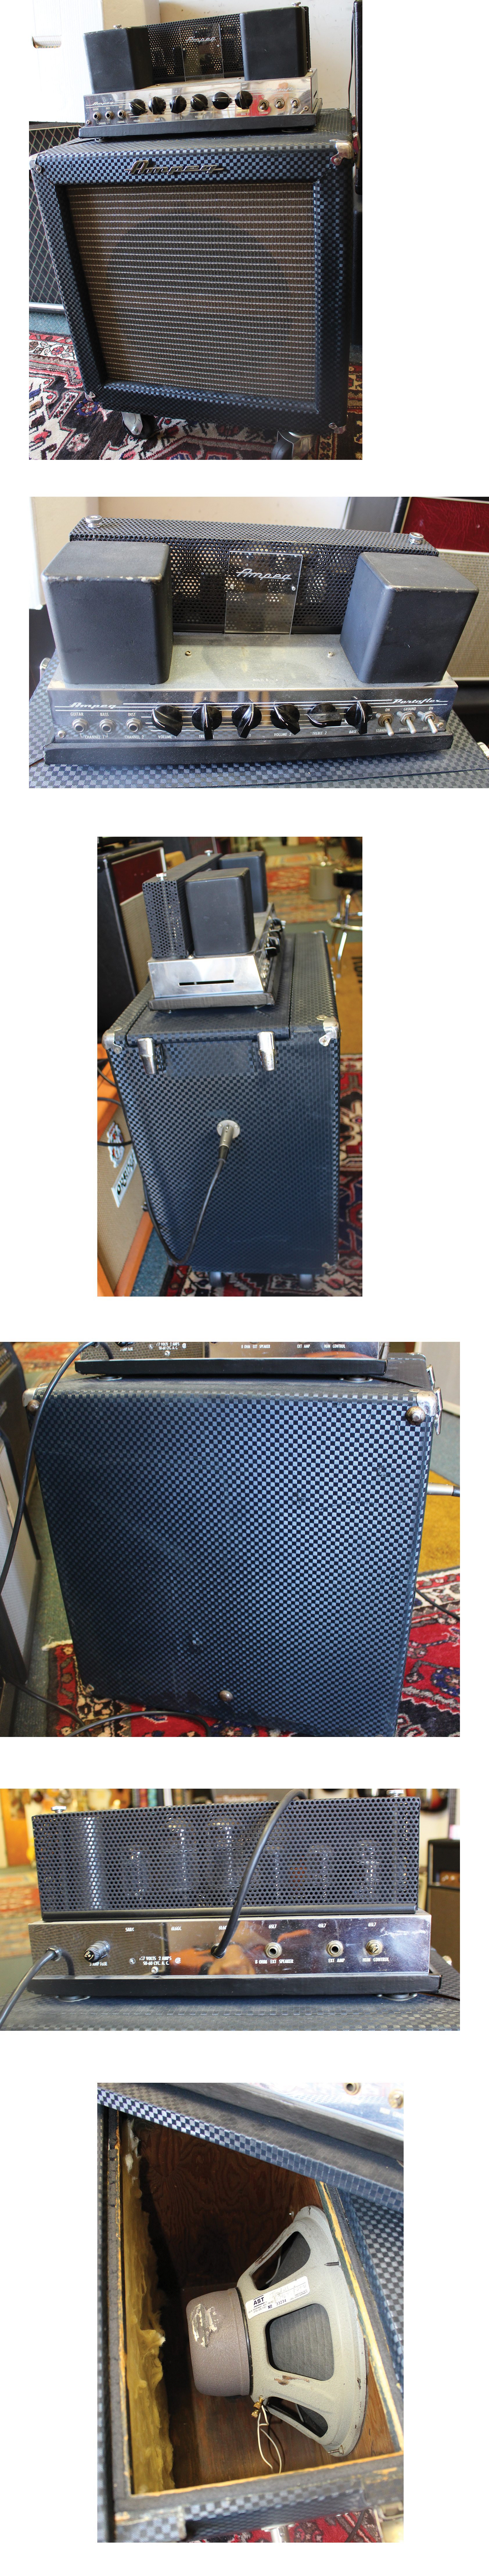 Lark Street Music Just In 1905 30 Amp Fuse Box 2200 Ampeg B 15n C 1965 Blue Square Tolex Looks Old And New Could Be A Factory Recover The Classic Fliptop Bass Speaker Like 15